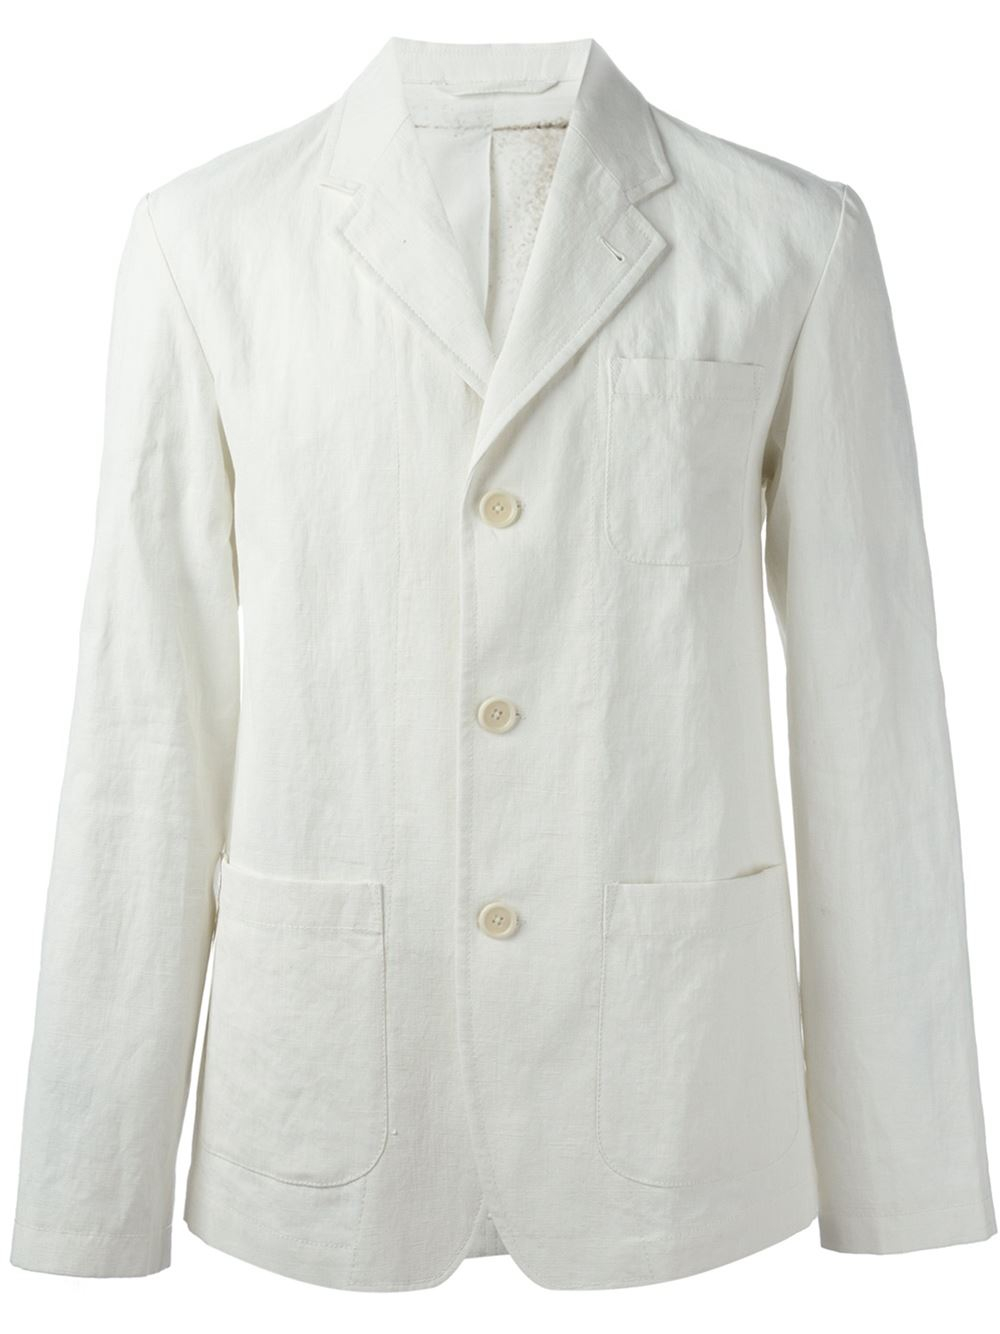 Linen Men's Clothing: warmongeri.ga - Your Online Men's Clothing Store! Get 5% in rewards with Club O! Verno Men's White % Linen 2-piece Classic-fit Peak-lapel Jacket and Pants Suit. 14 Reviews. Sienna White Slim Fit, Linen Jacket by Tiglio Luxe RS/